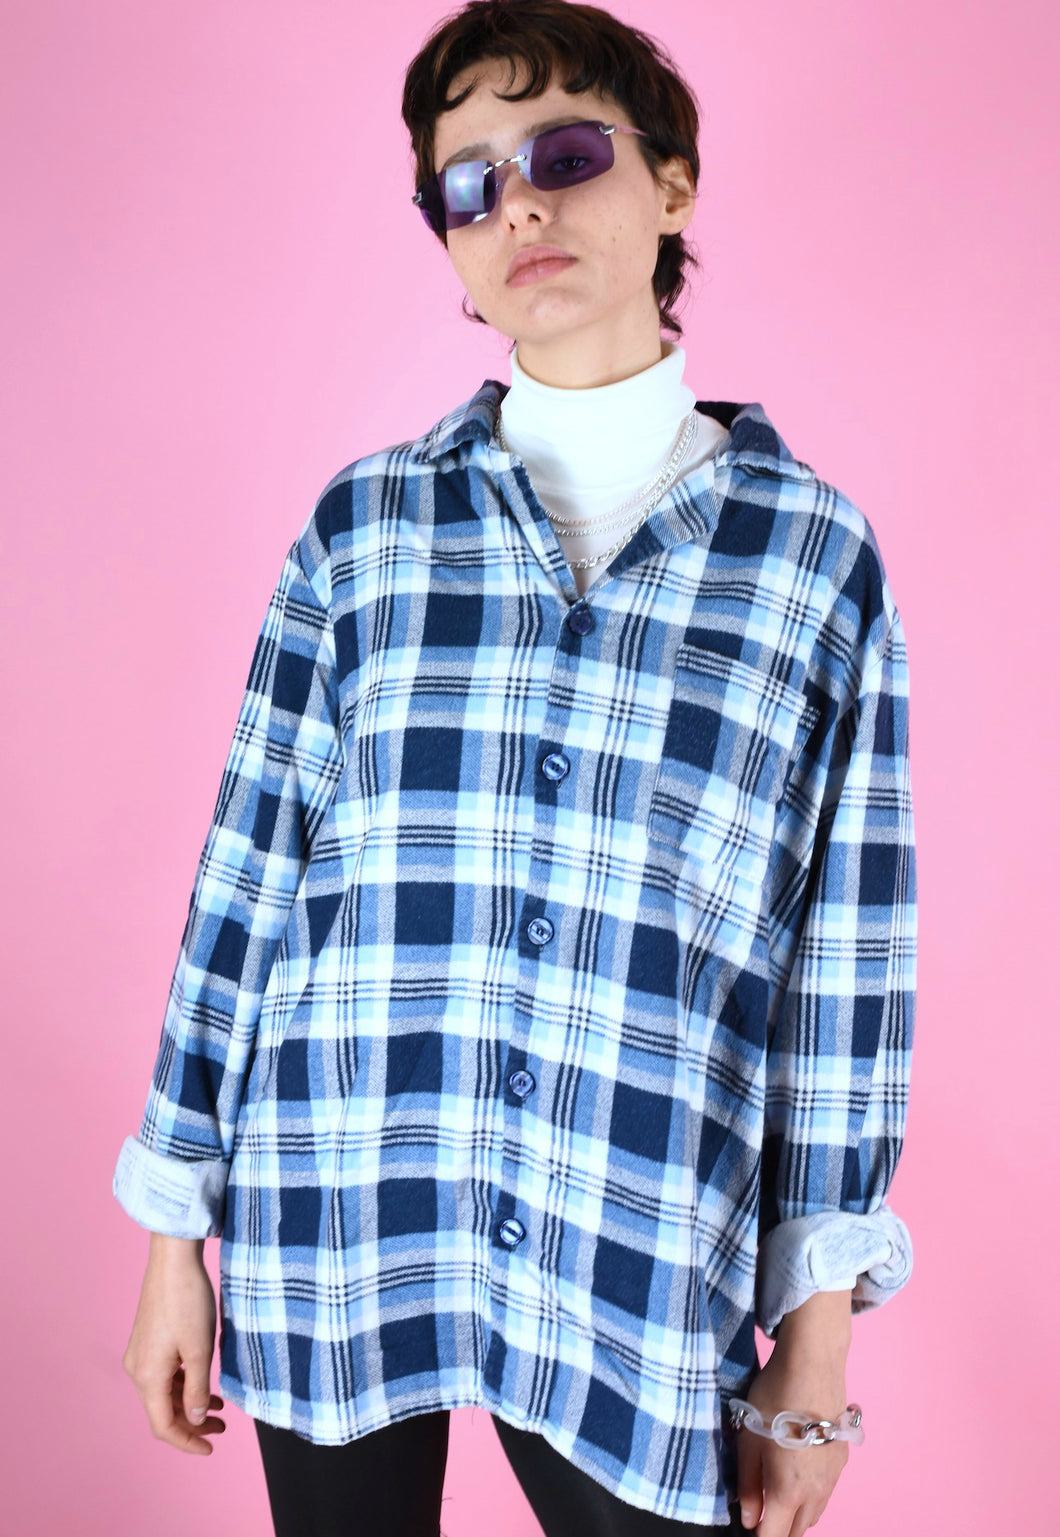 Vintage 90s Flannel Shirt in Blue with Check Pattern in M/L